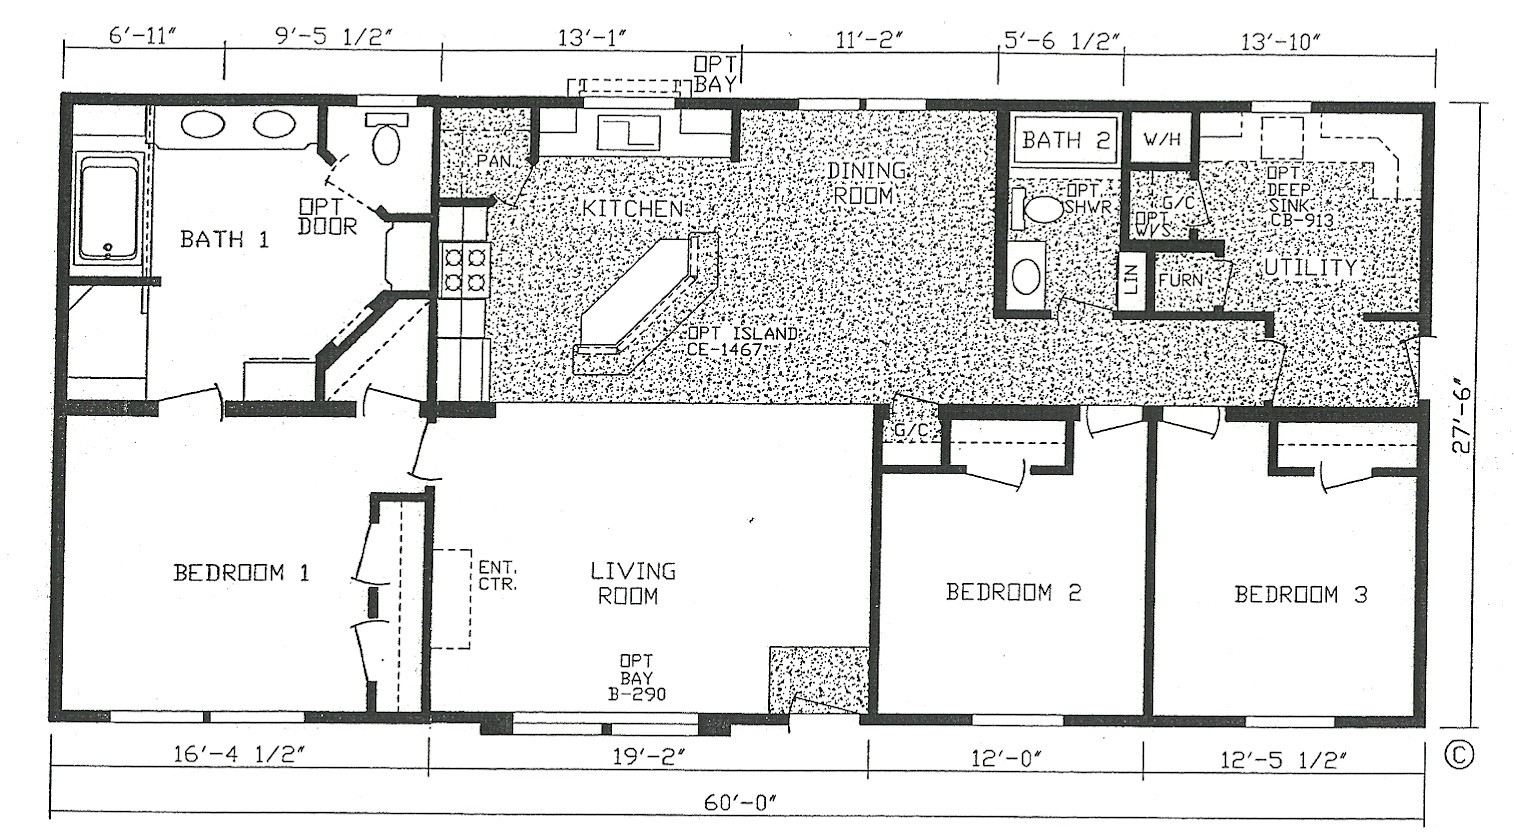 3 bedroom modular home floor plans